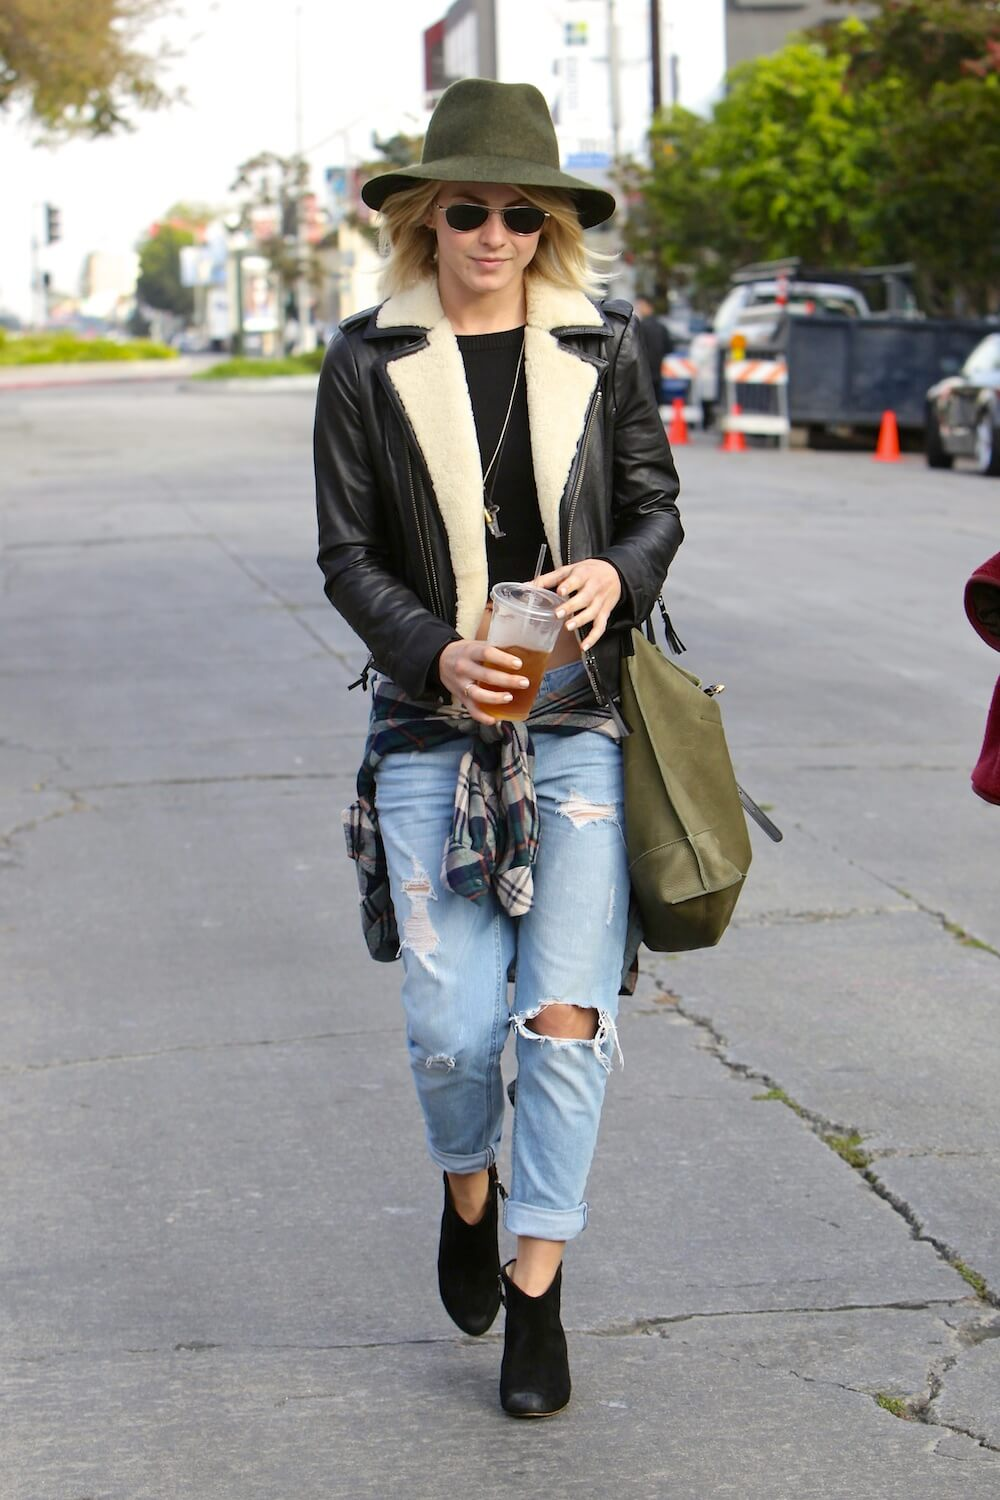 Julianne Hough and Cara Santana ripped jeans celebrity street style